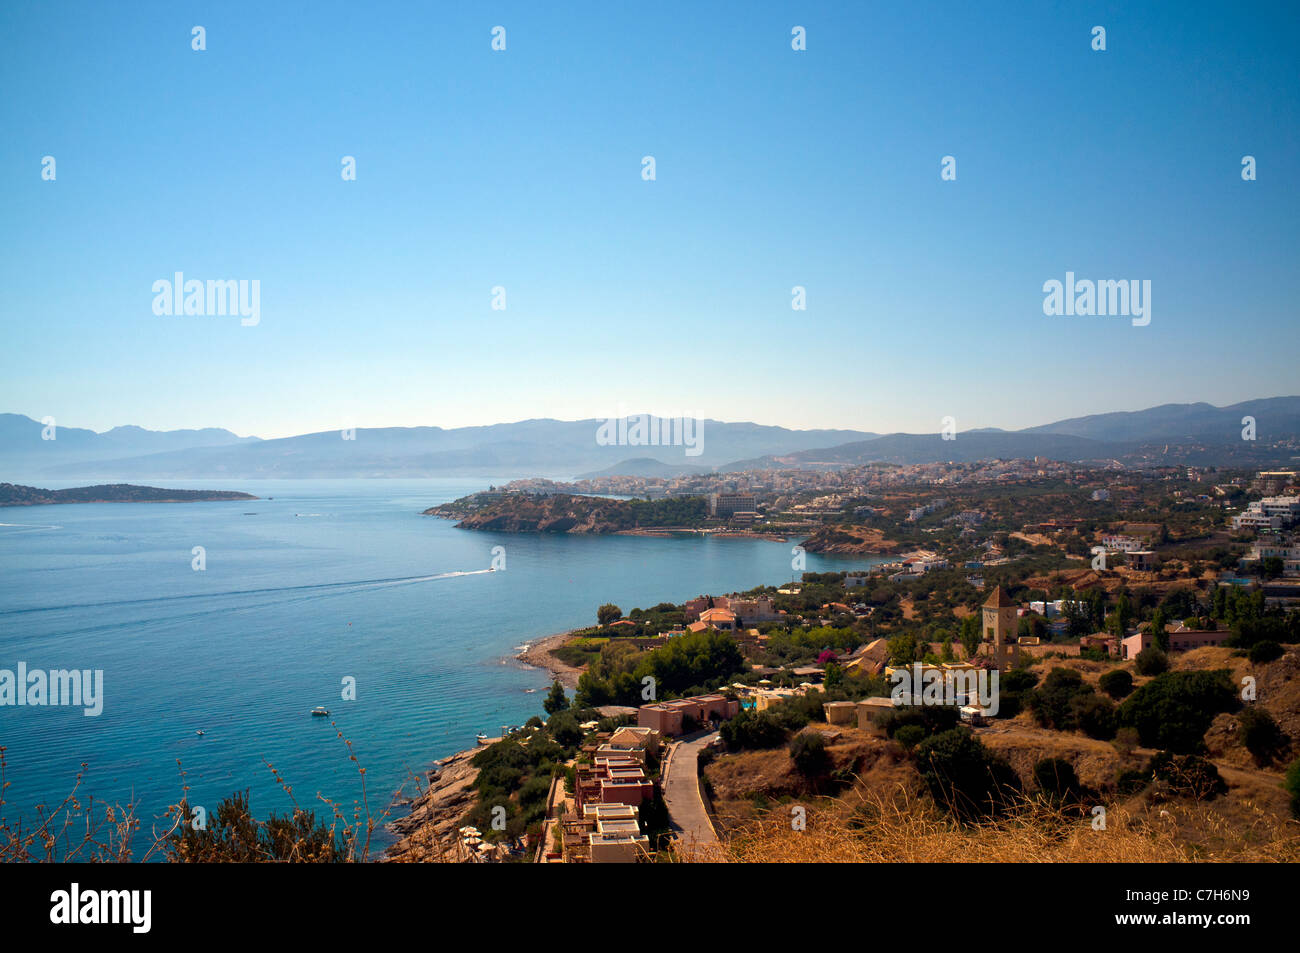 A view looking over the Bay of Mirabello towards Agios Nikolaos on the Greek island of Crete - Stock Image